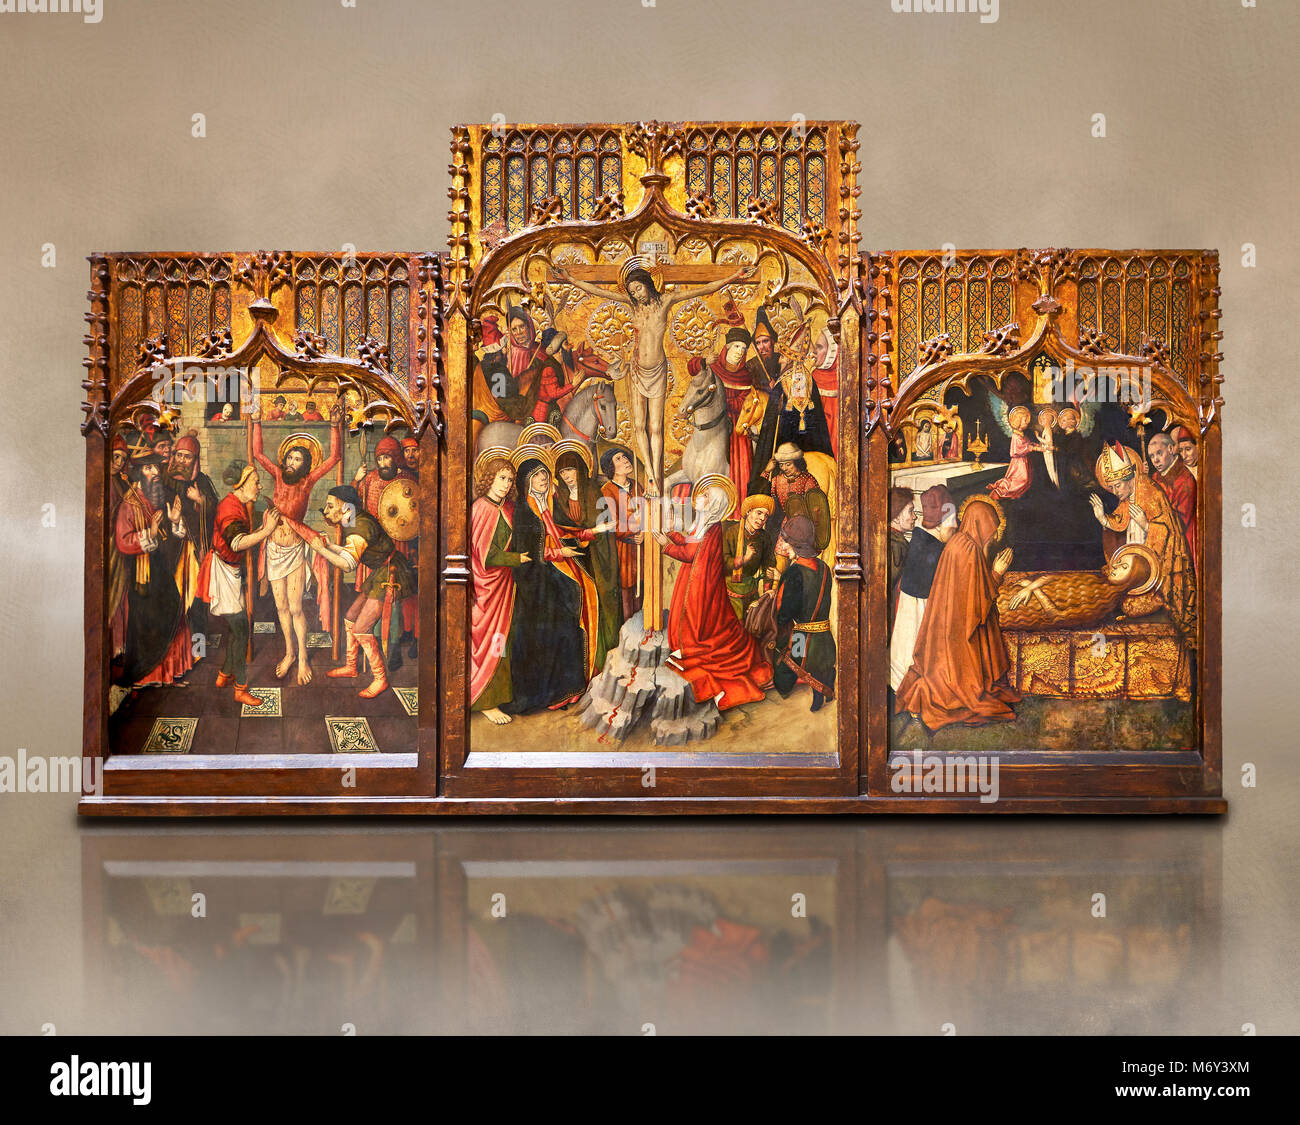 Gothic Catalan altarpiece of, left to right, the martydom of St Bartholomew, Calvaty and the deat of St Mary Magdelene, Stock Photo